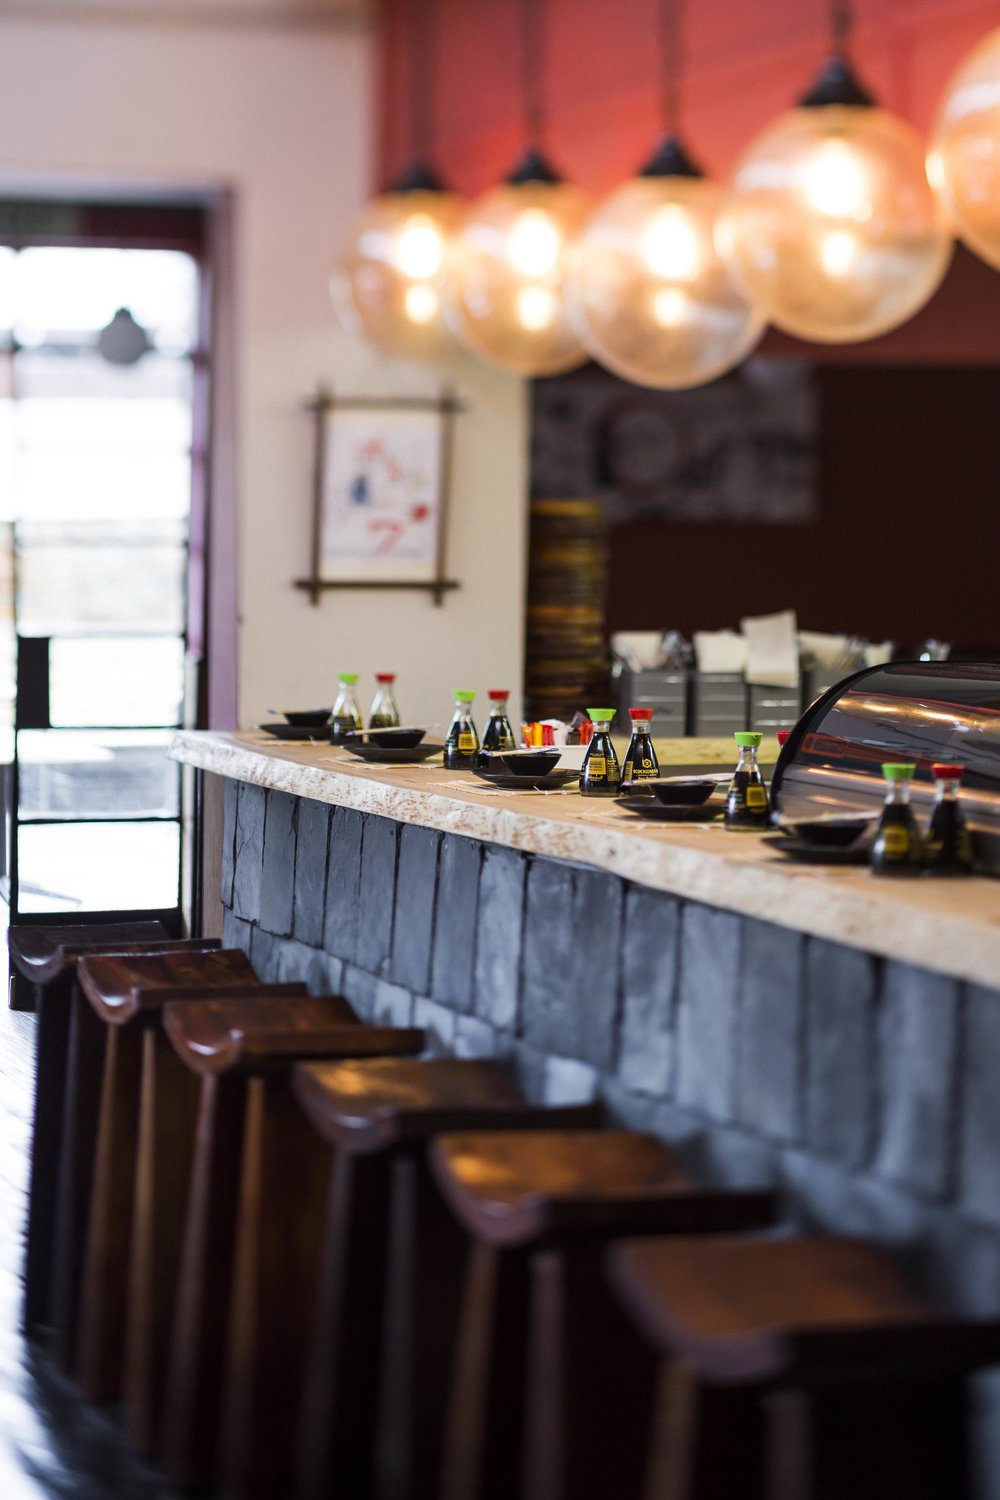 The Sushi Bar. Image by Michael le Grange.